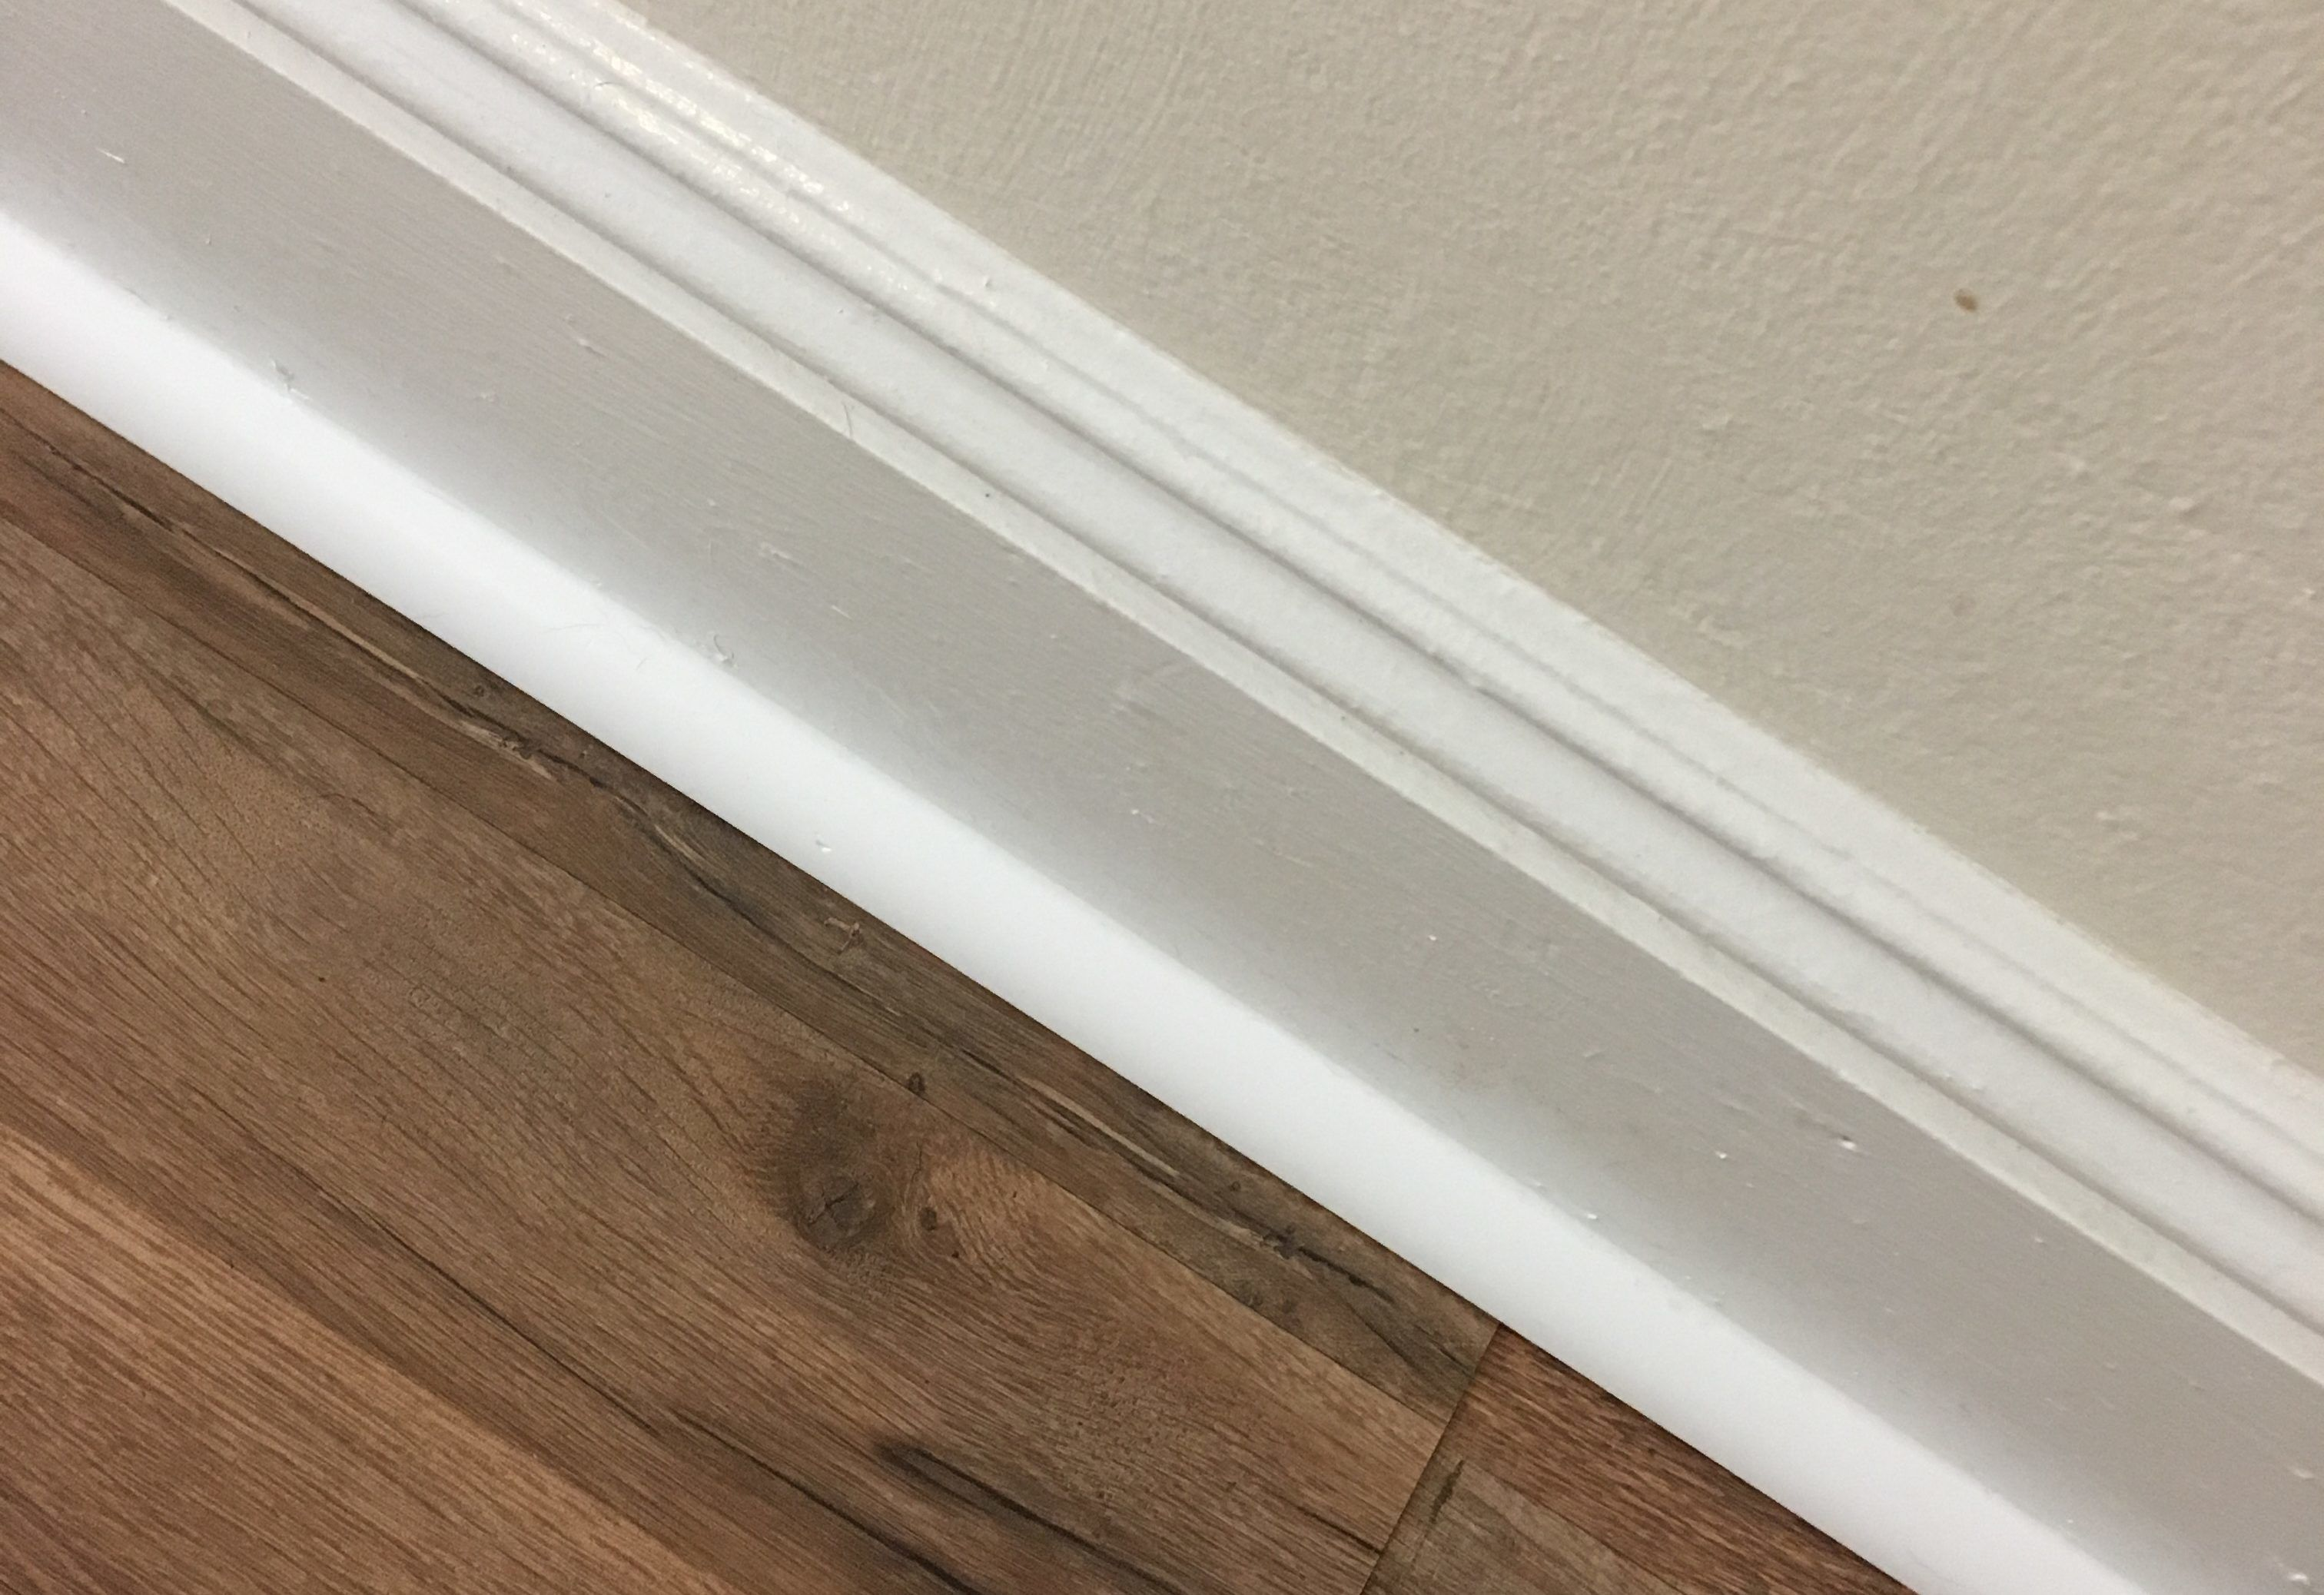 How To Install Quarter Round Molding With A Hammer And Nails Cabana State Of Mind Installing Laminate Flooring Laminate Flooring Quarter Round Molding